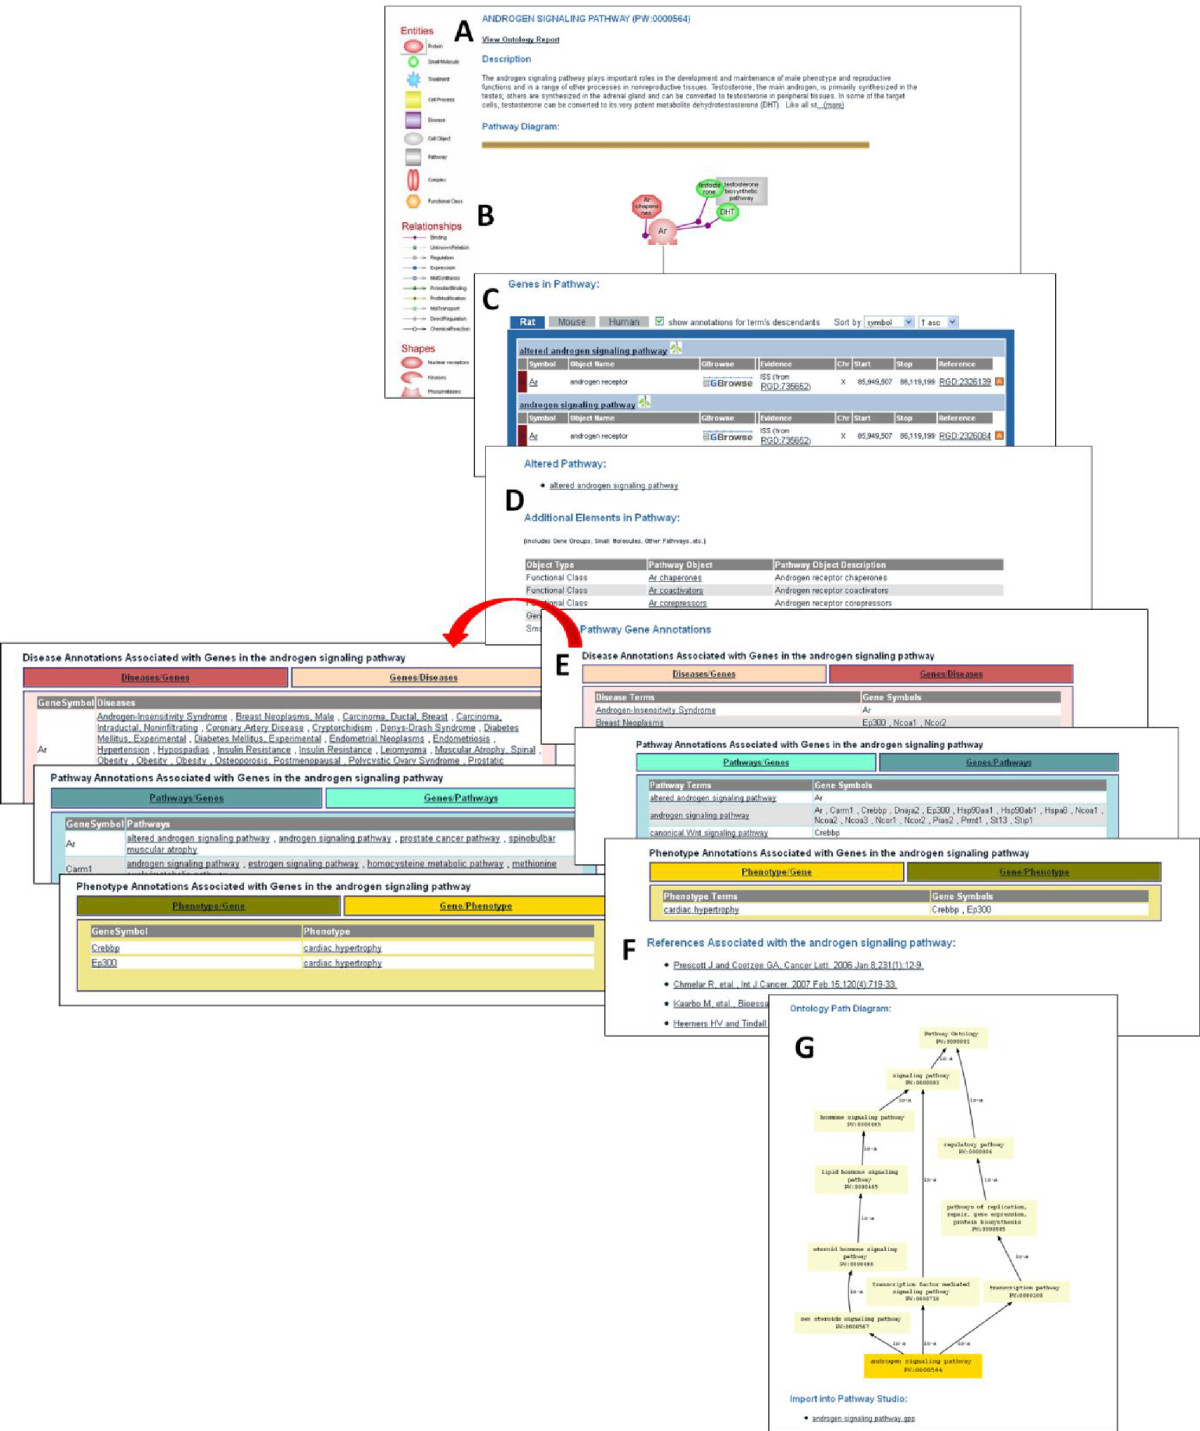 http://static-content.springer.com/image/art%3A10.1186%2F1479-7364-7-4/MediaObjects/40246_2012_Article_30_Fig2_HTML.jpg